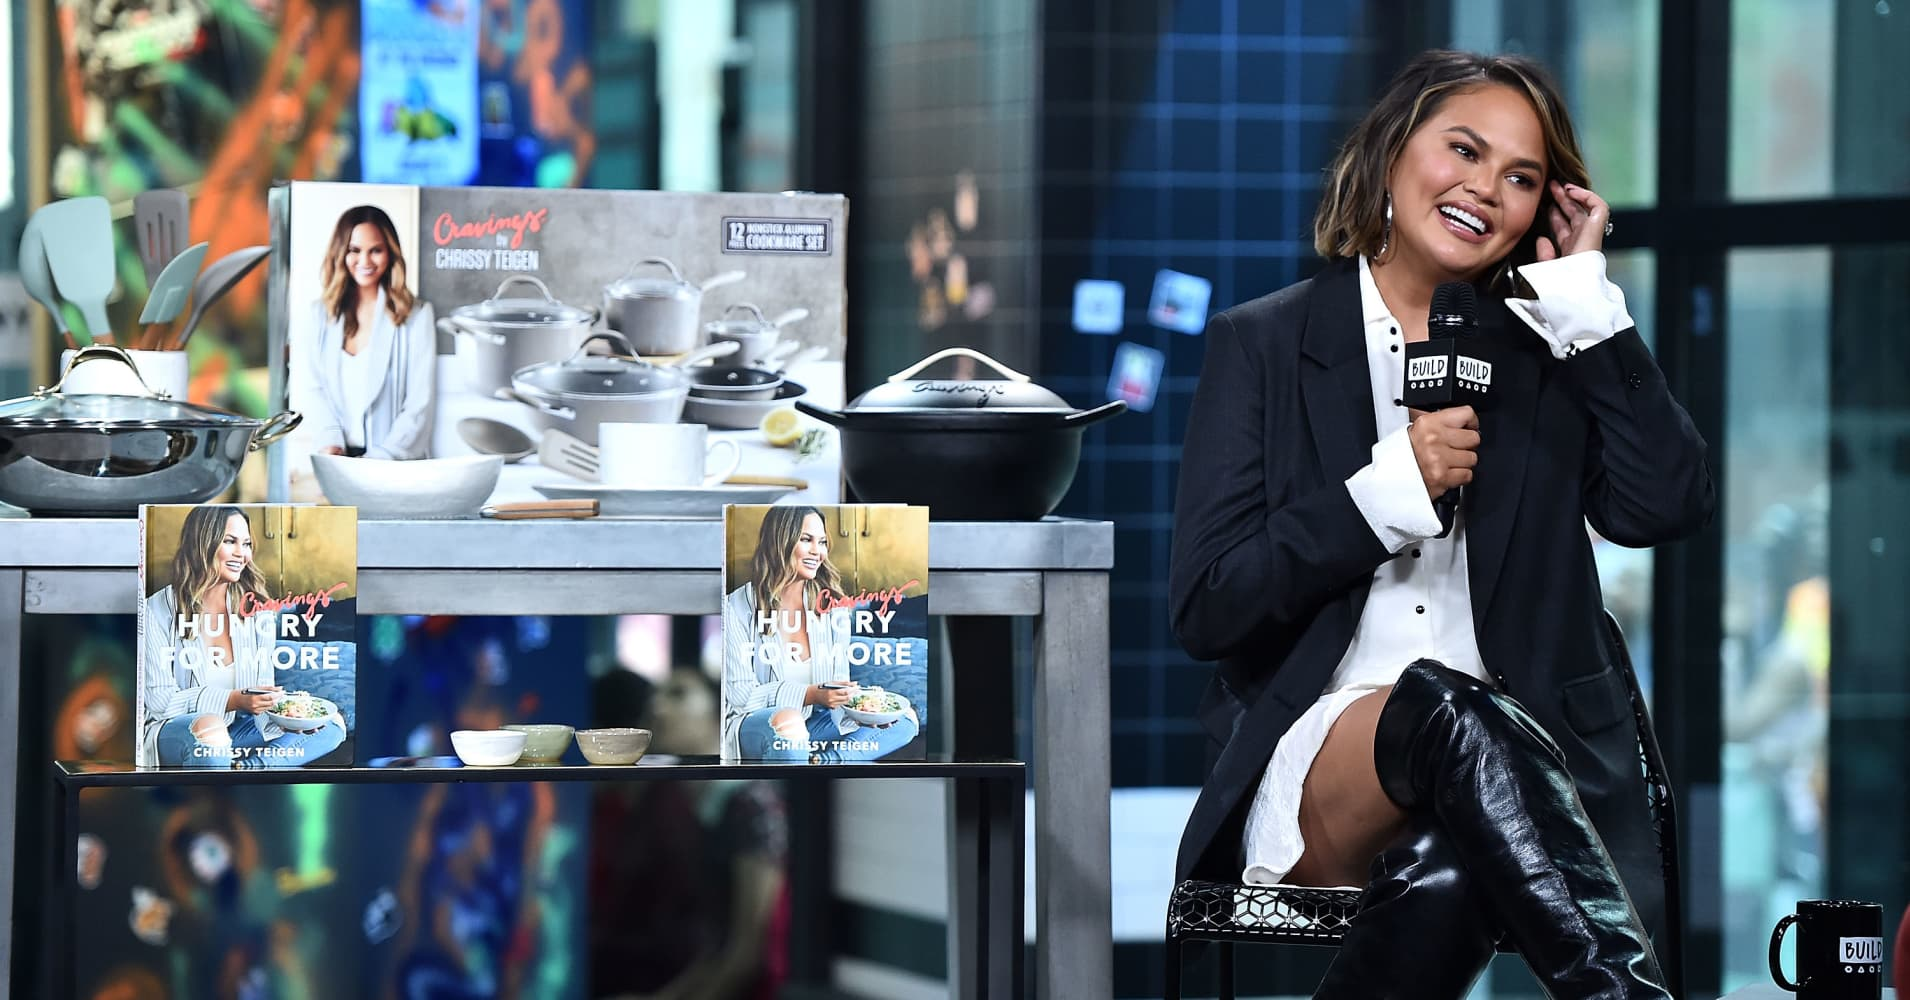 Chrissy Teigen launches a housewares collection in Target stores